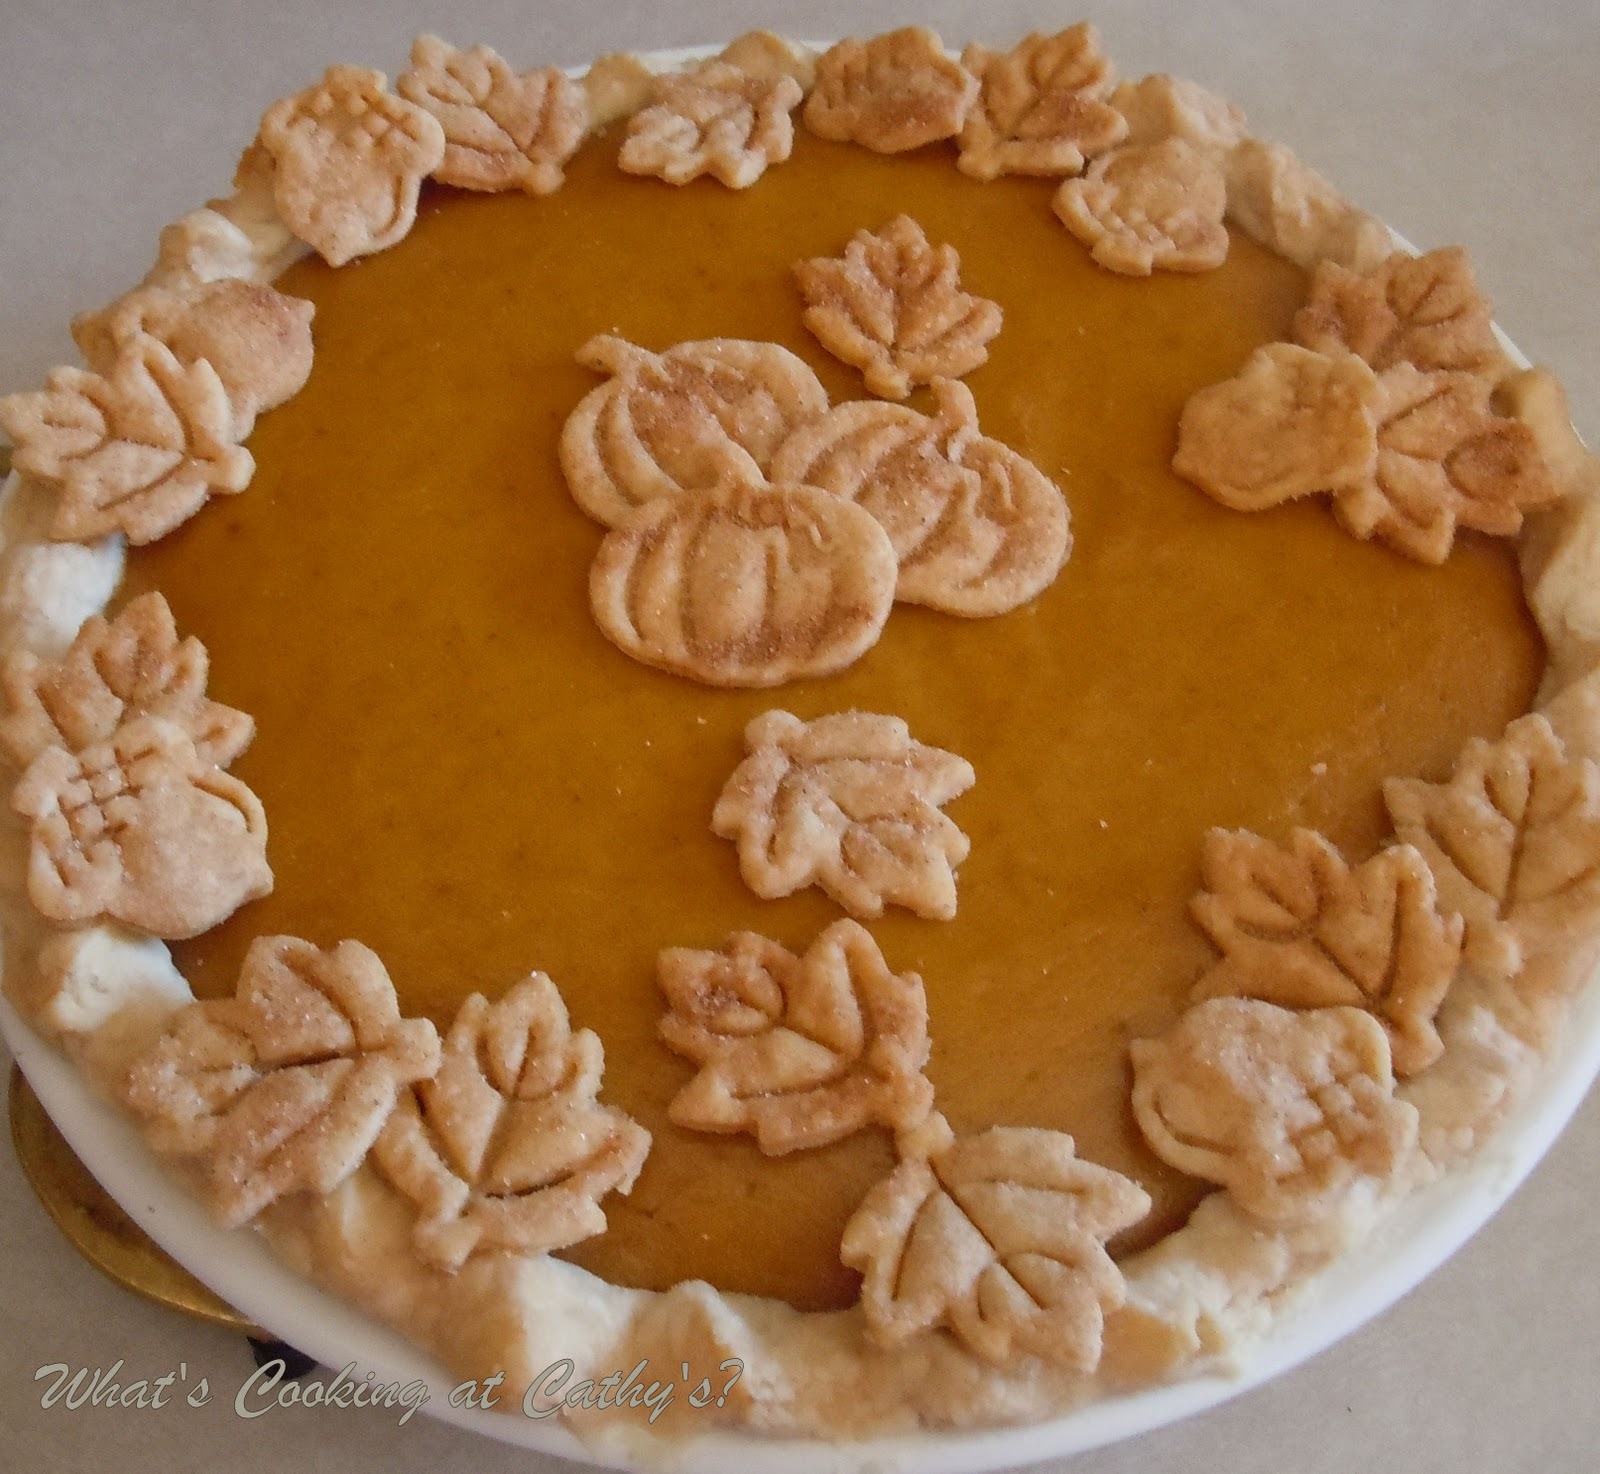 and pumpkin tart maple pumpkin pie lafayette bakery maple pumpkin pie ...